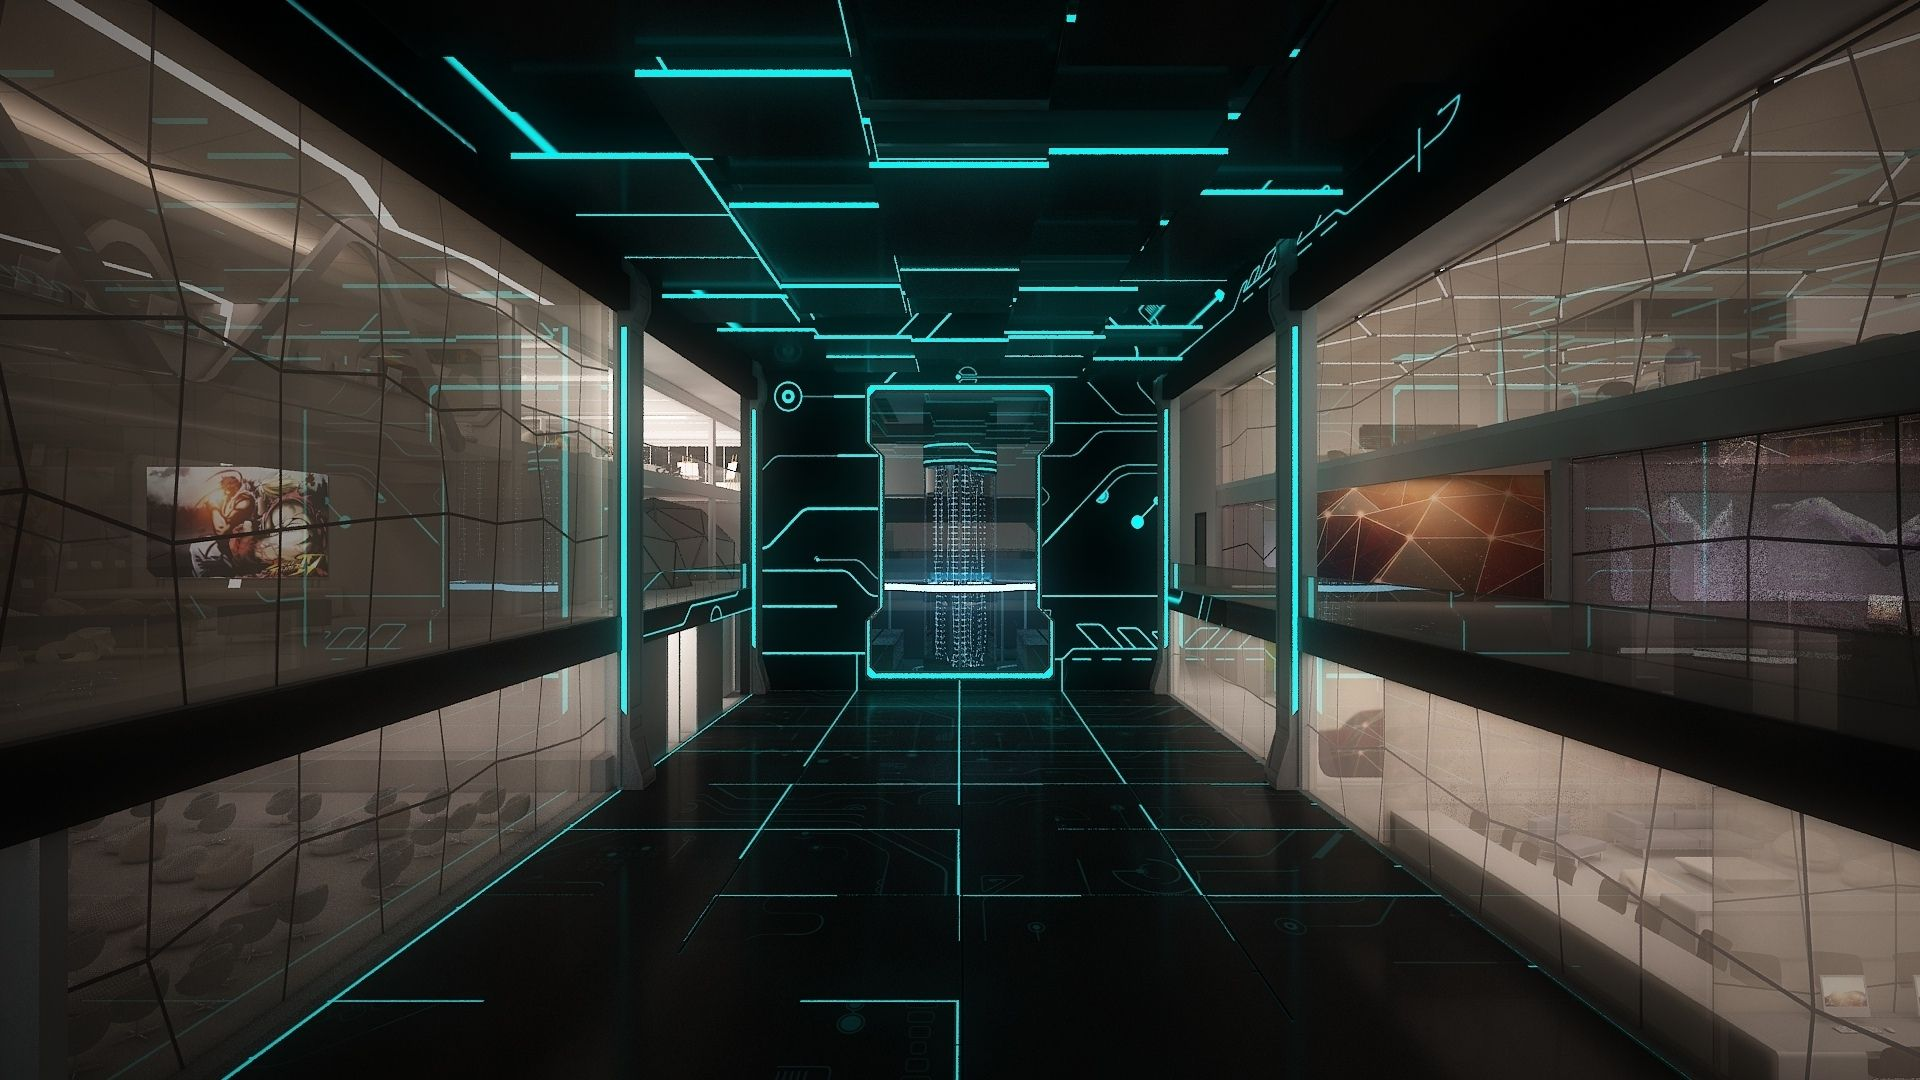 Space Monitors Line Staley Room Technology Sci Fi Science Computer Futuristic Wallpaper Background